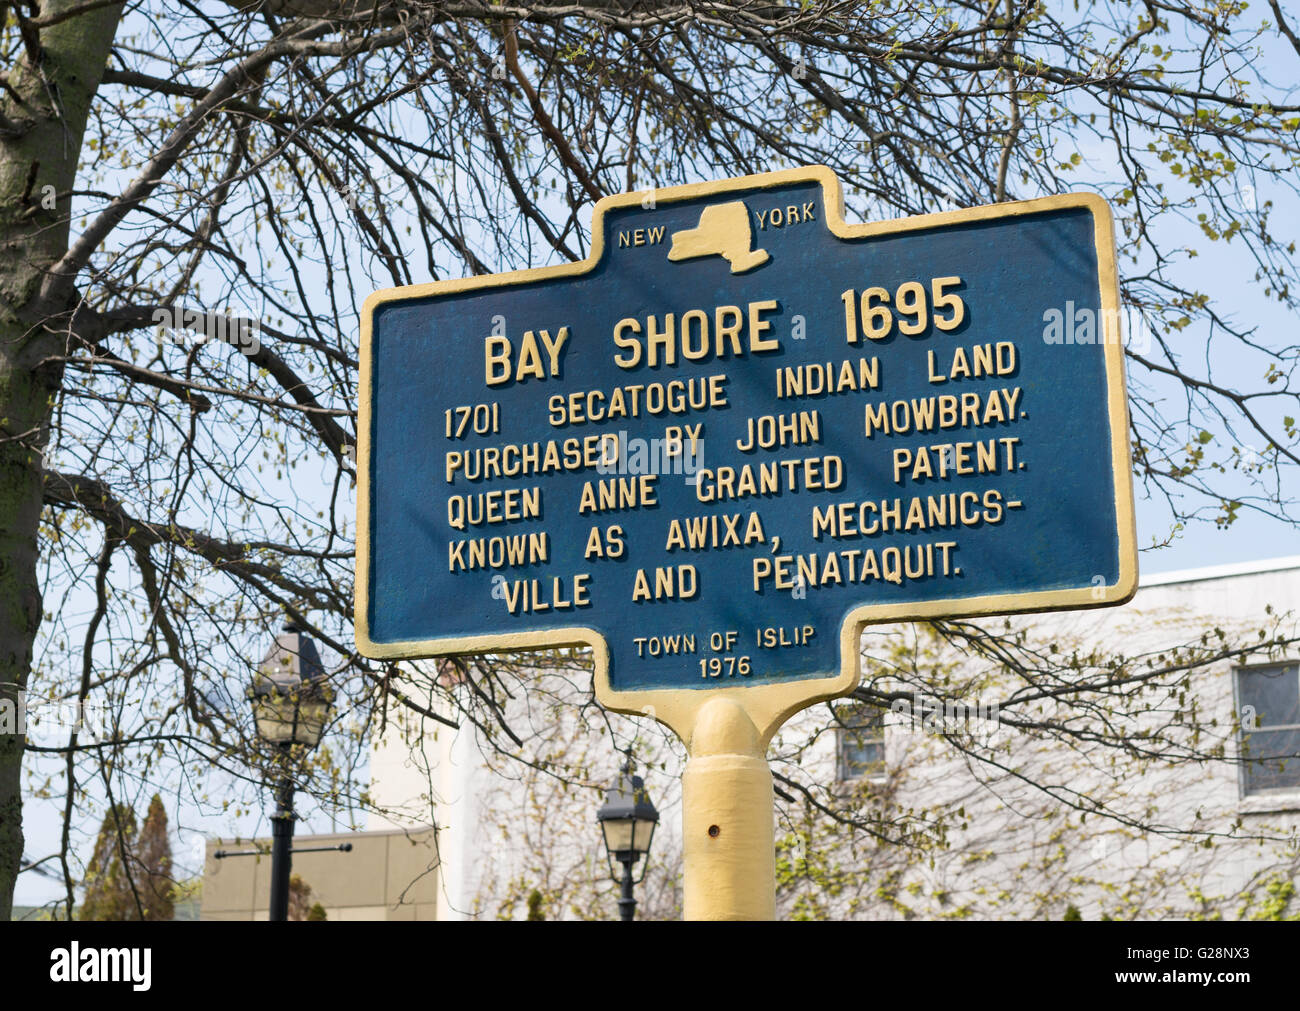 Notice Bay Shore 1695, purchase of Secatogue Indian land, town of Islip, Long Island, New York, USA - Stock Image